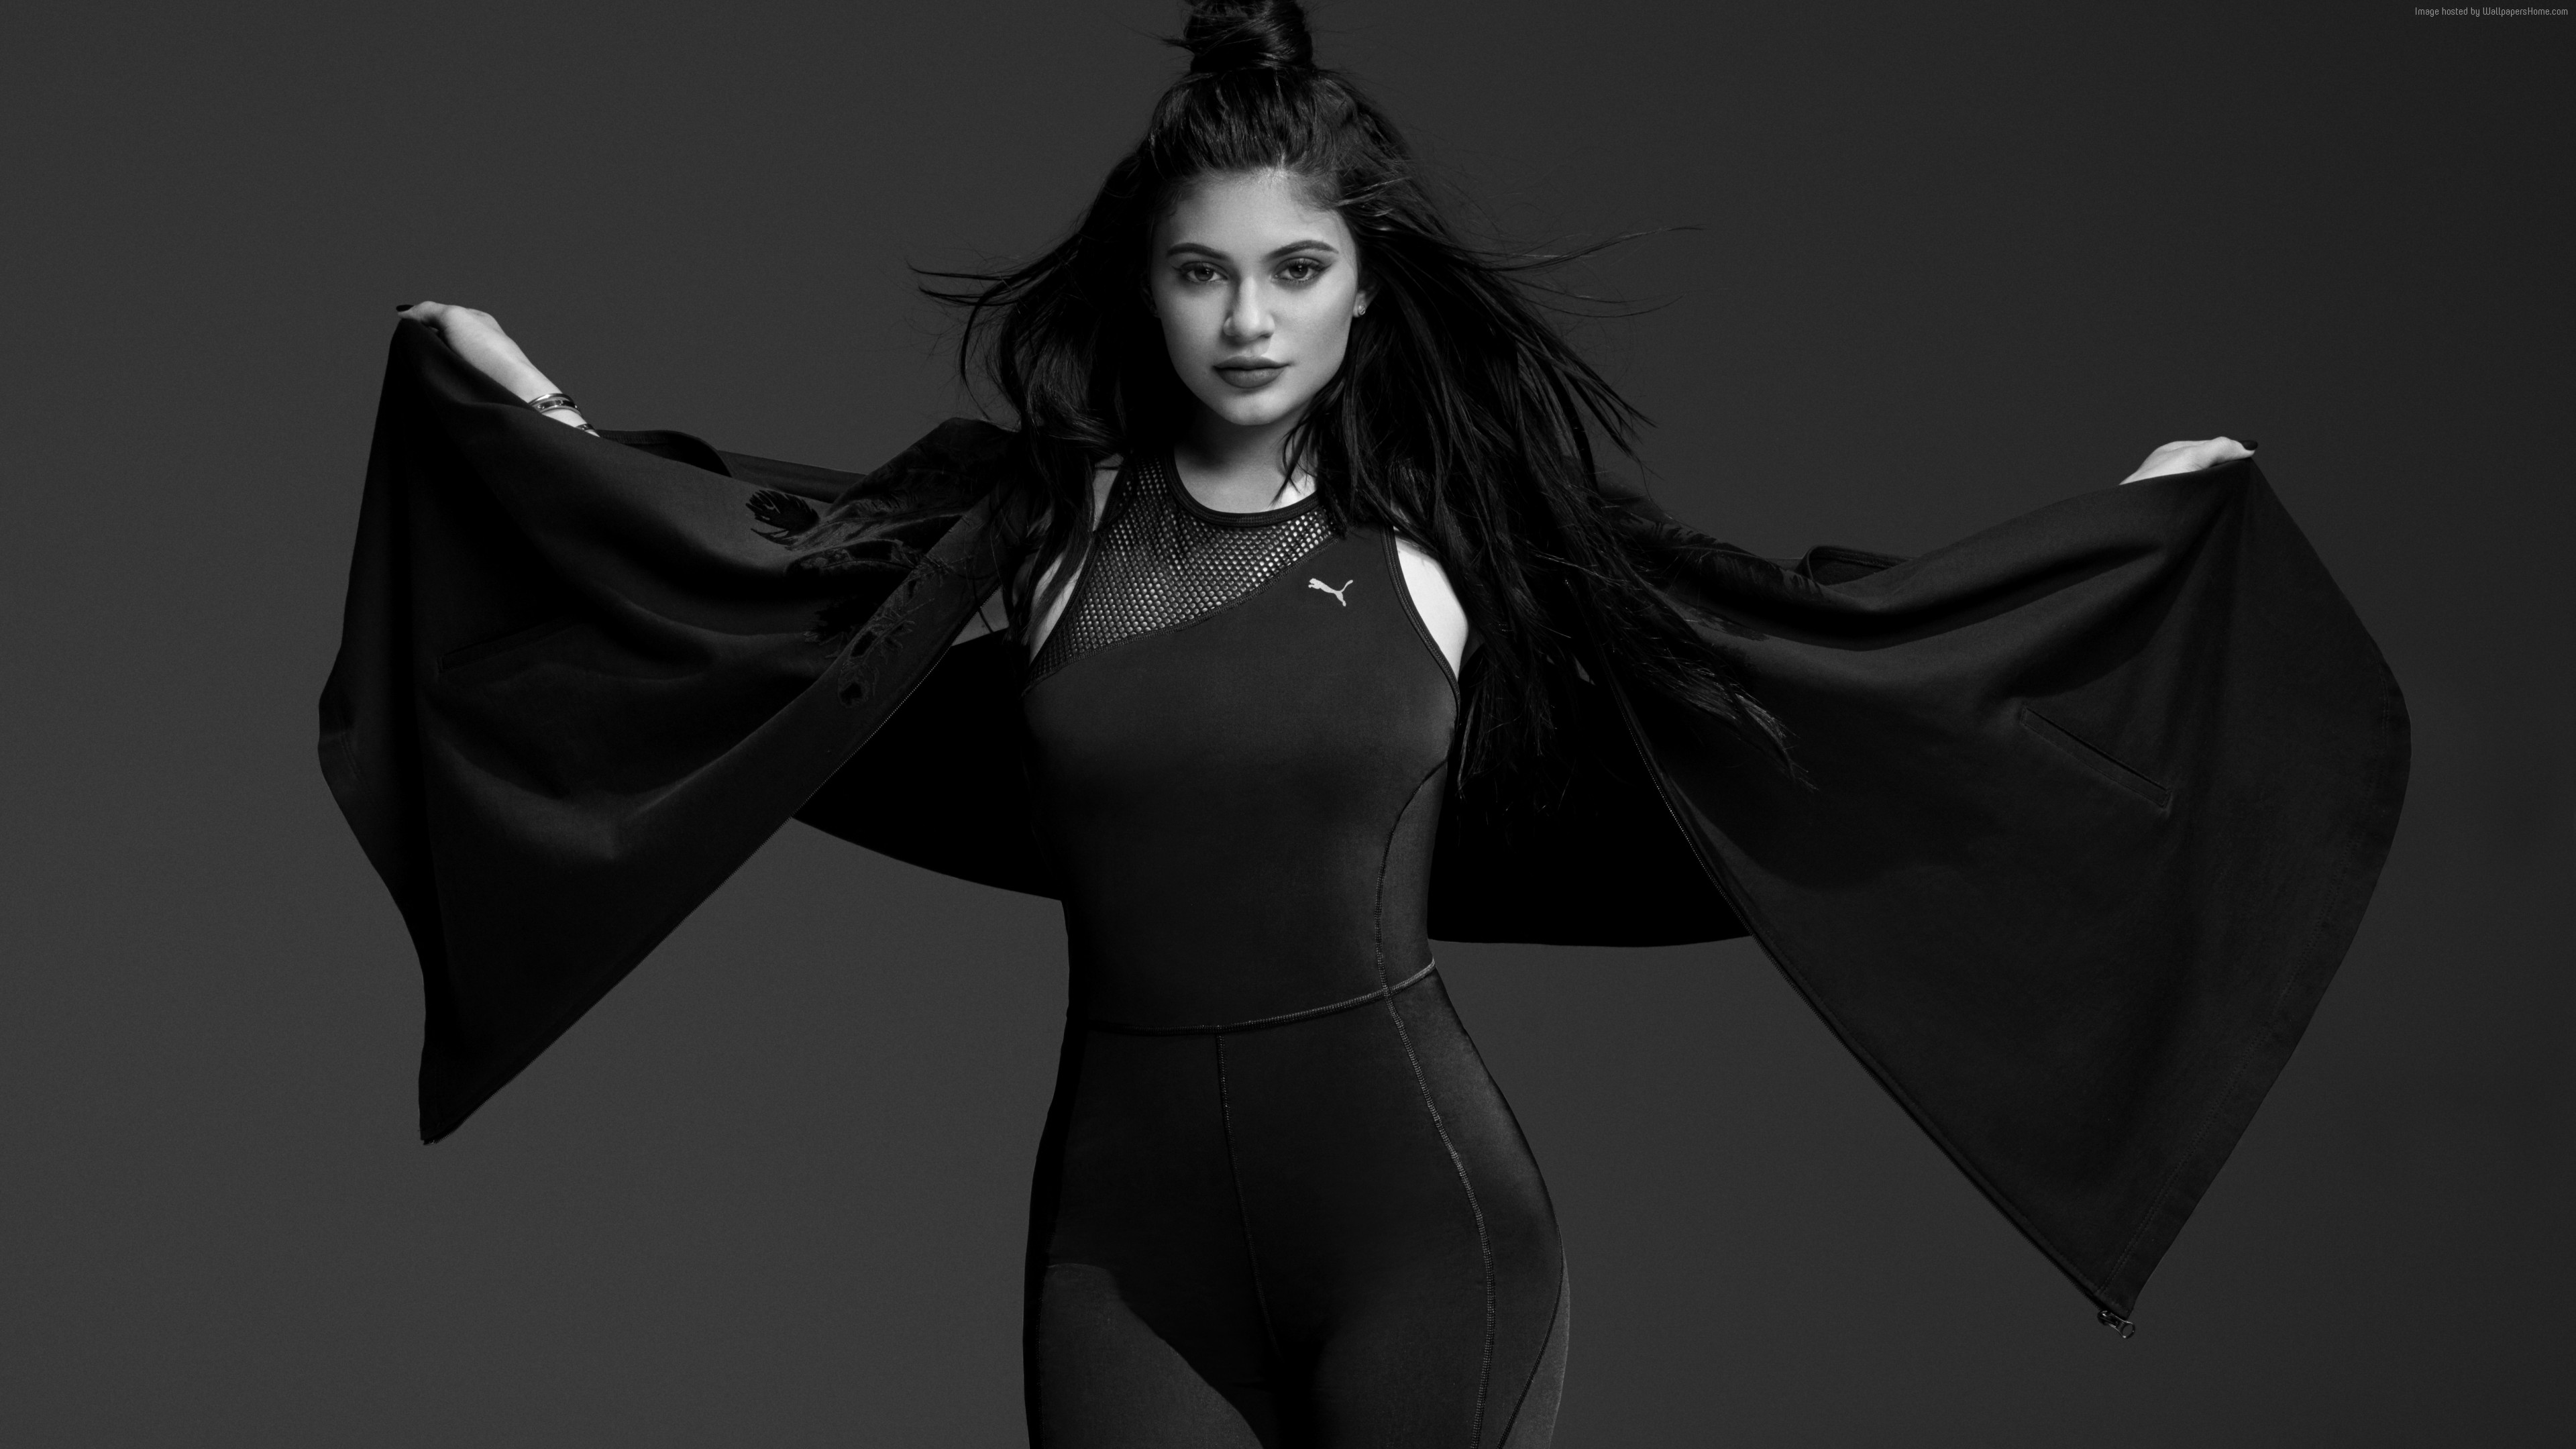 Wallpaper Kylie Jenner Puma Black 6k Celebrities